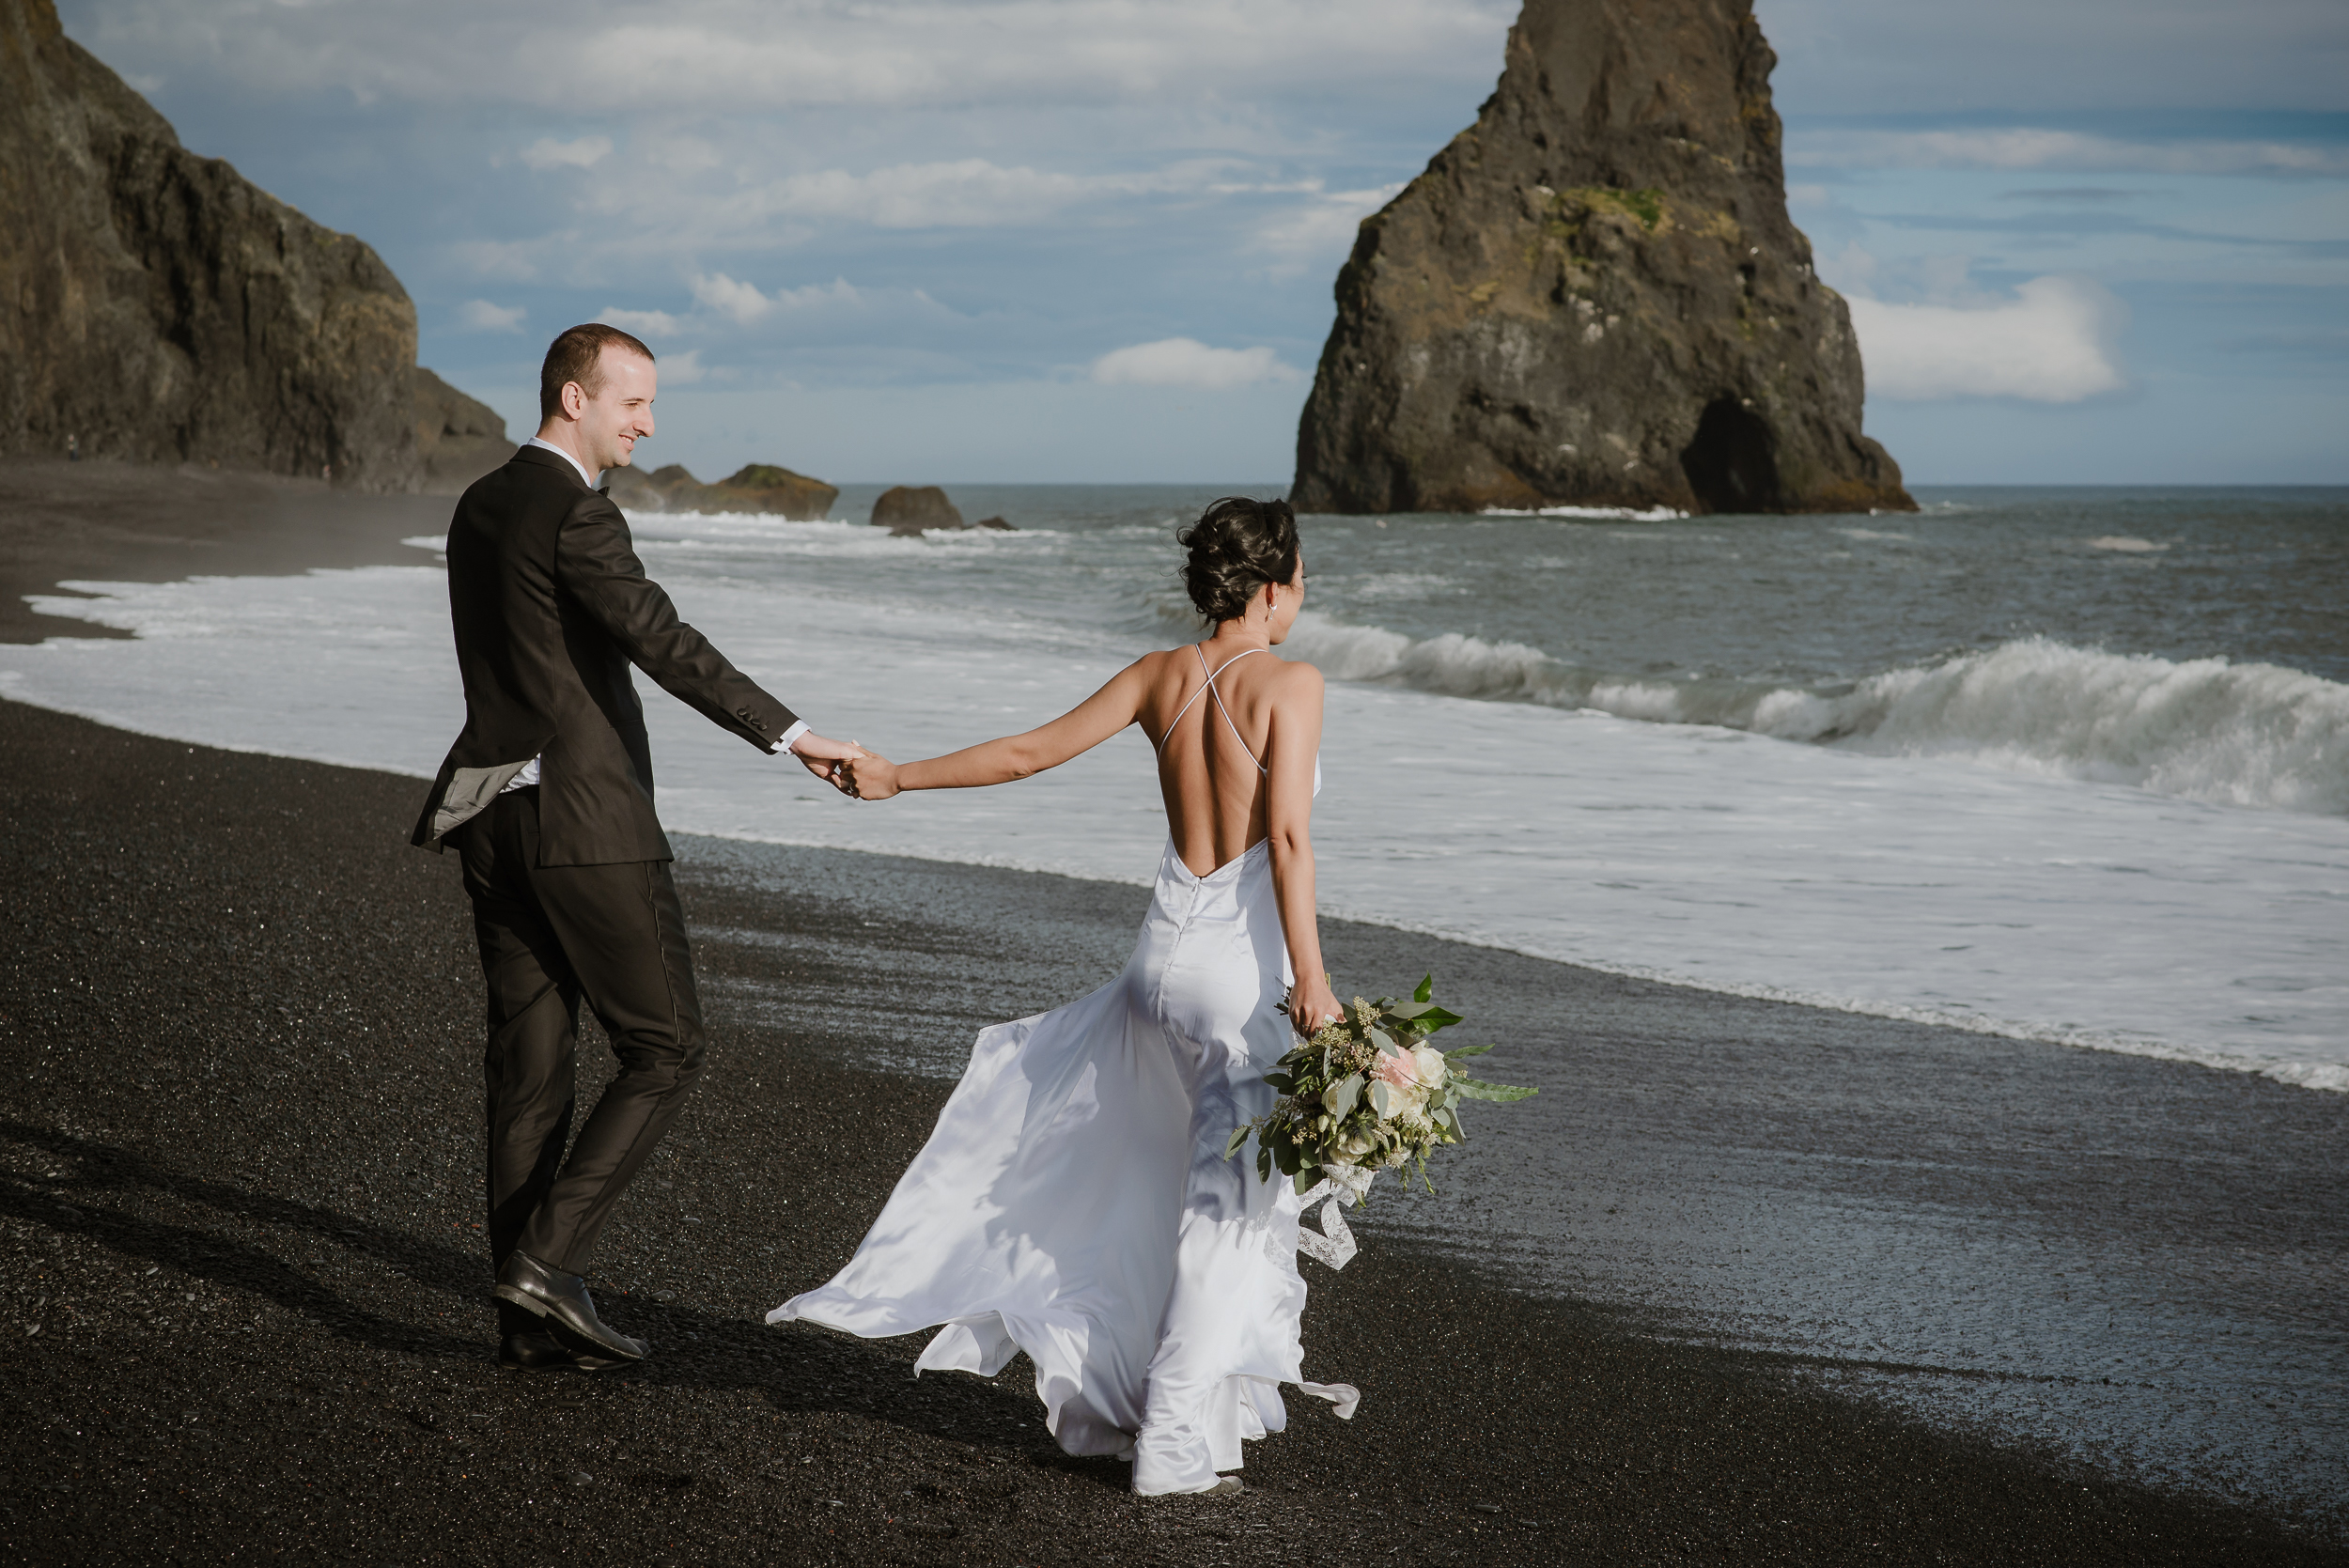 23-destination-wedding-iceland-engagement-session-vivianchen-182.jpg